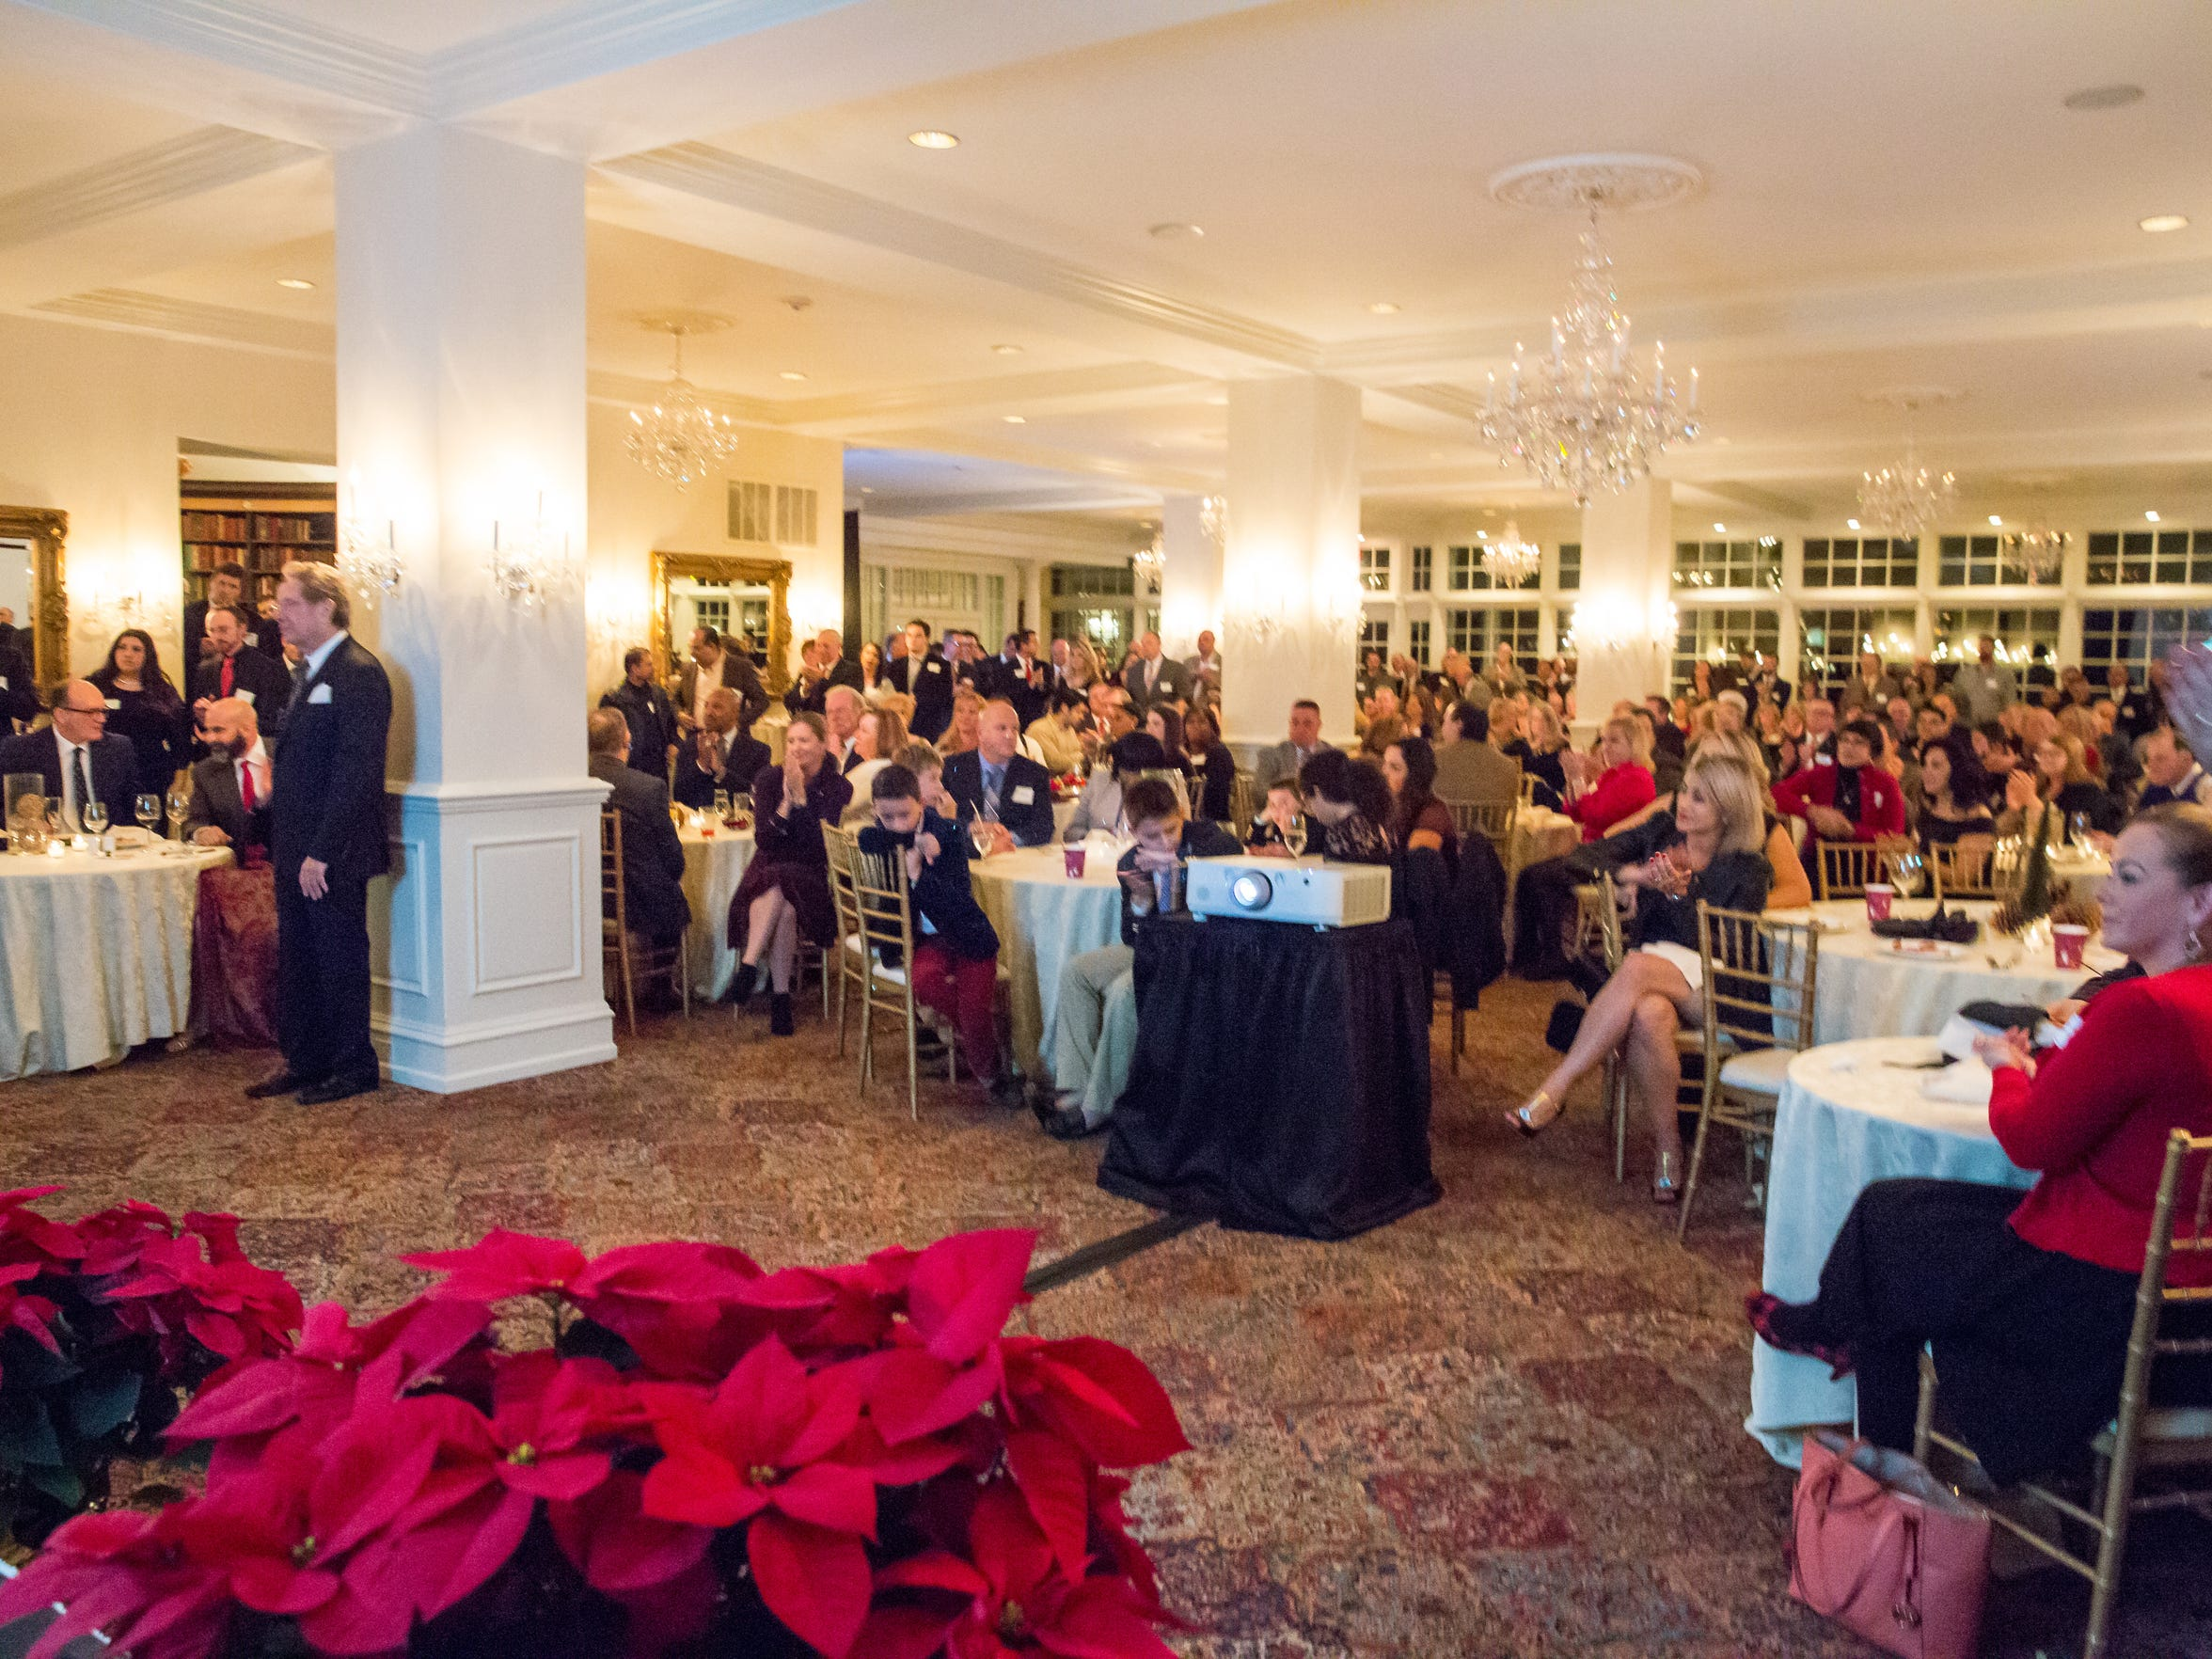 The Somerset Patriots held their Christmas party at Trump National.